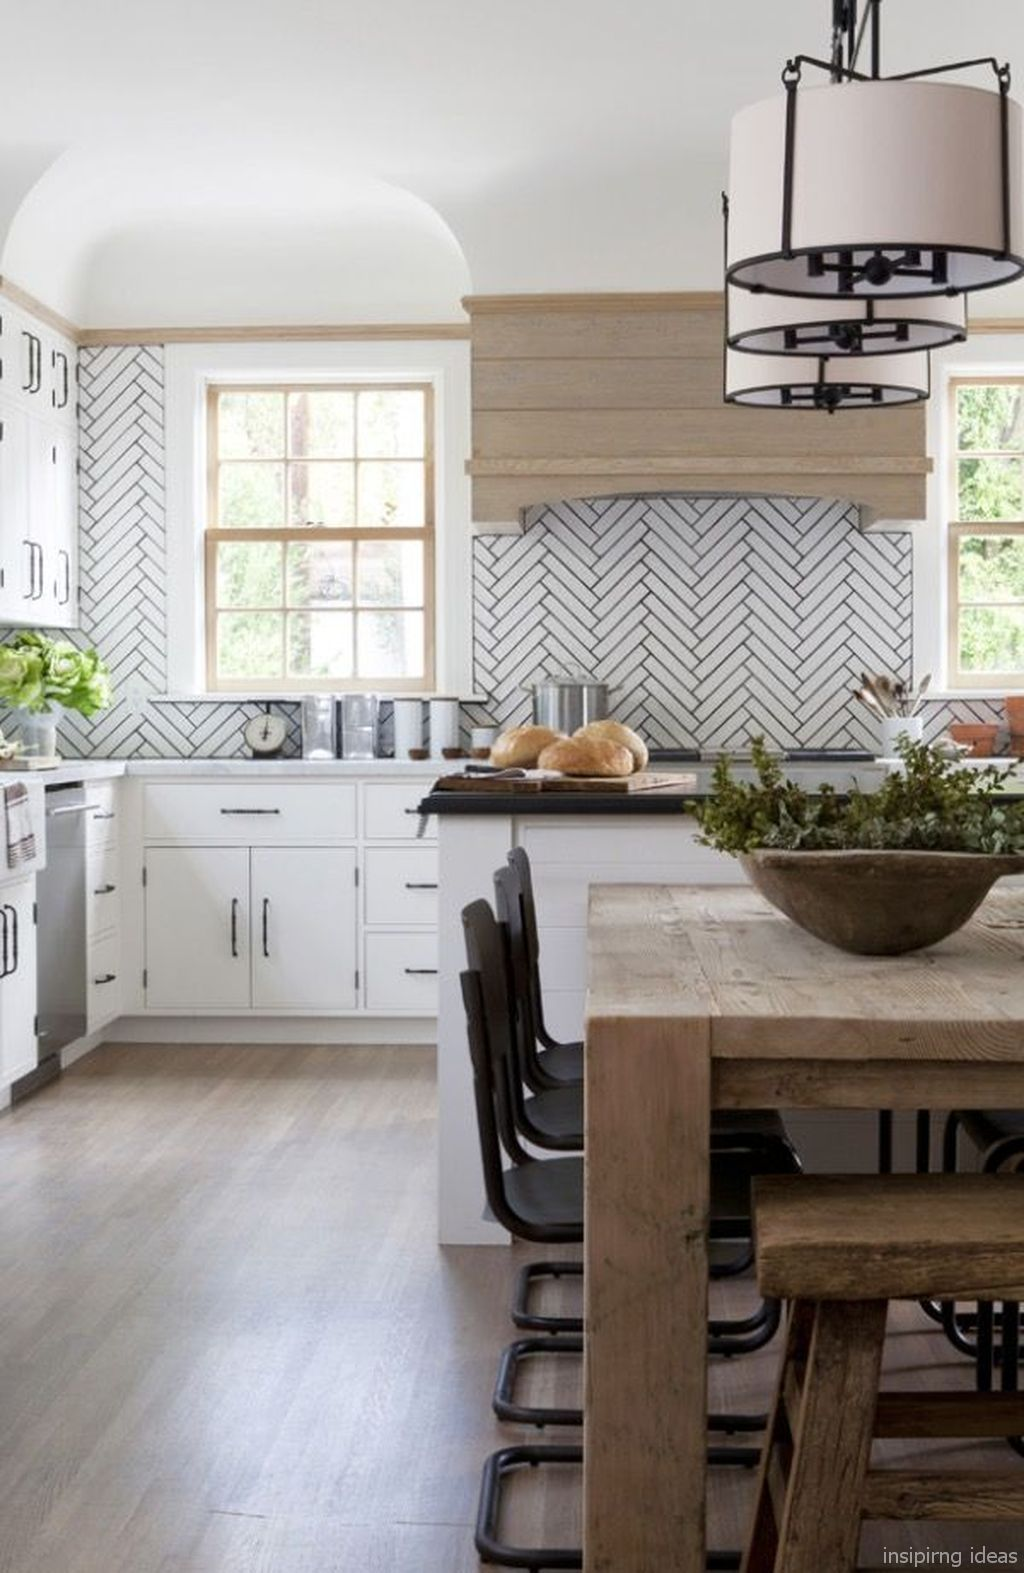 80 beautiful modern farmhouse kitchen backsplash ideas modern farmhouse kitchens beautiful on farmhouse kitchen backsplash id=15227